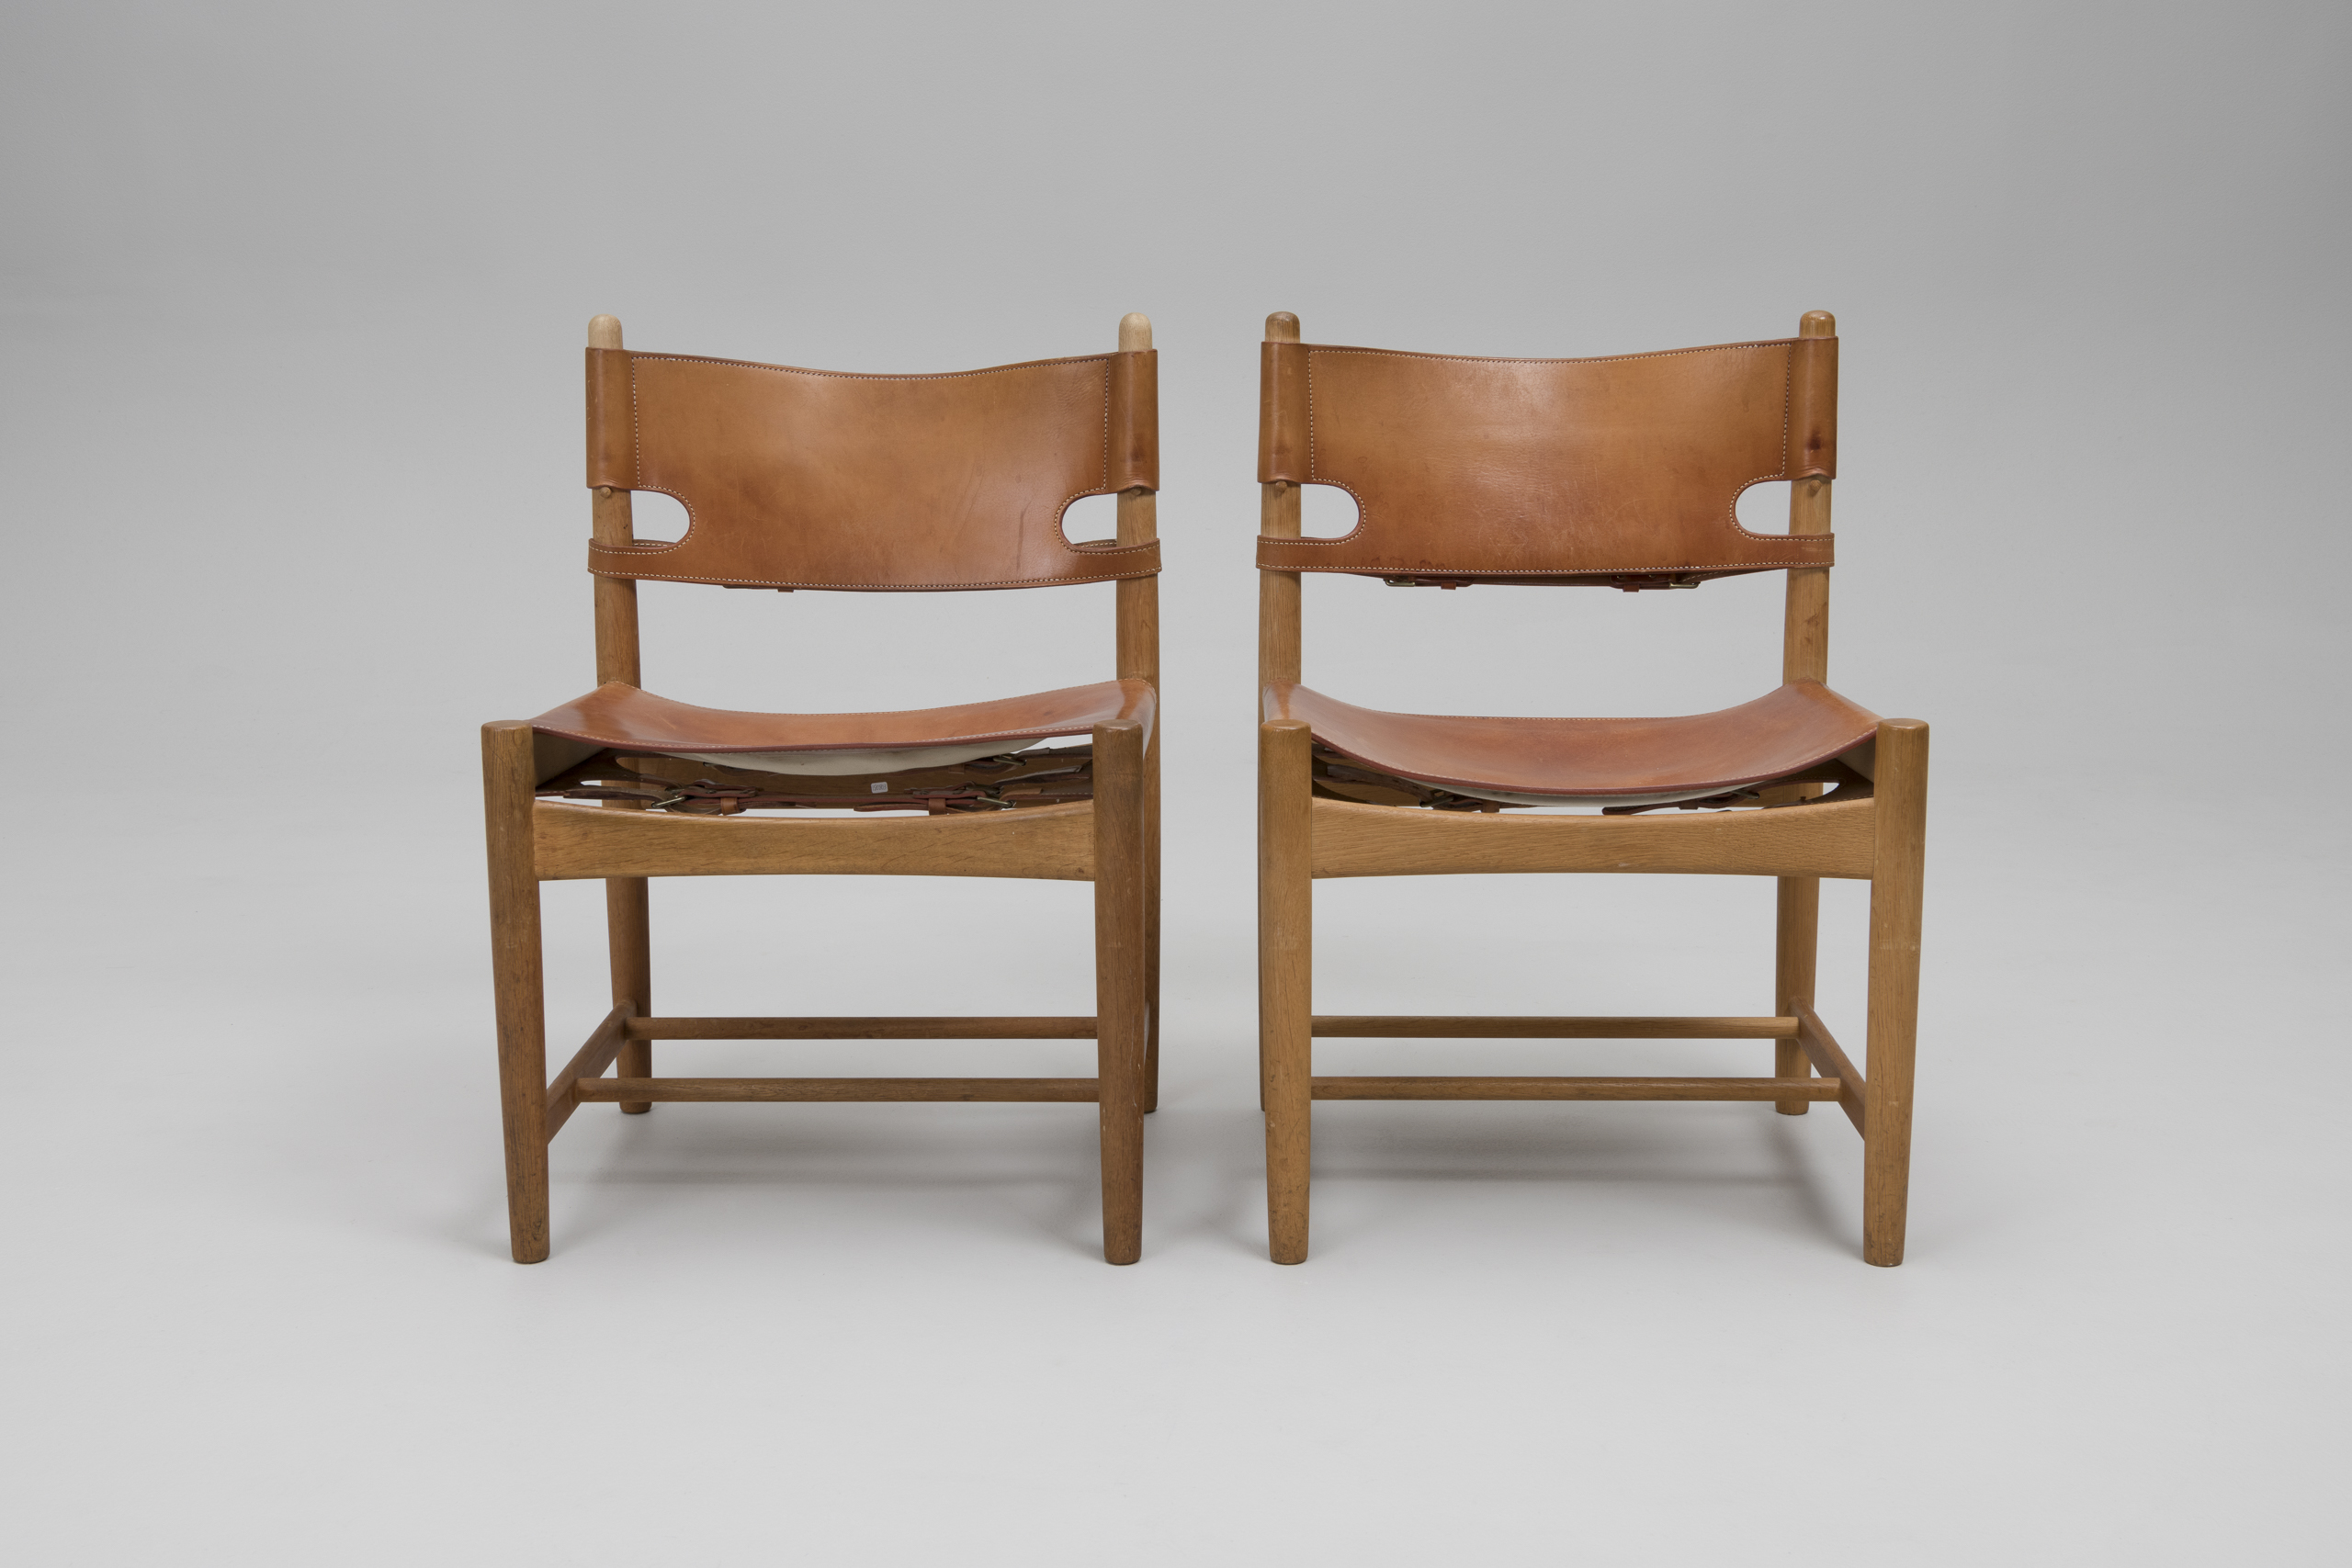 Set of Six 'Hunting' Chairs, Model no. 3227